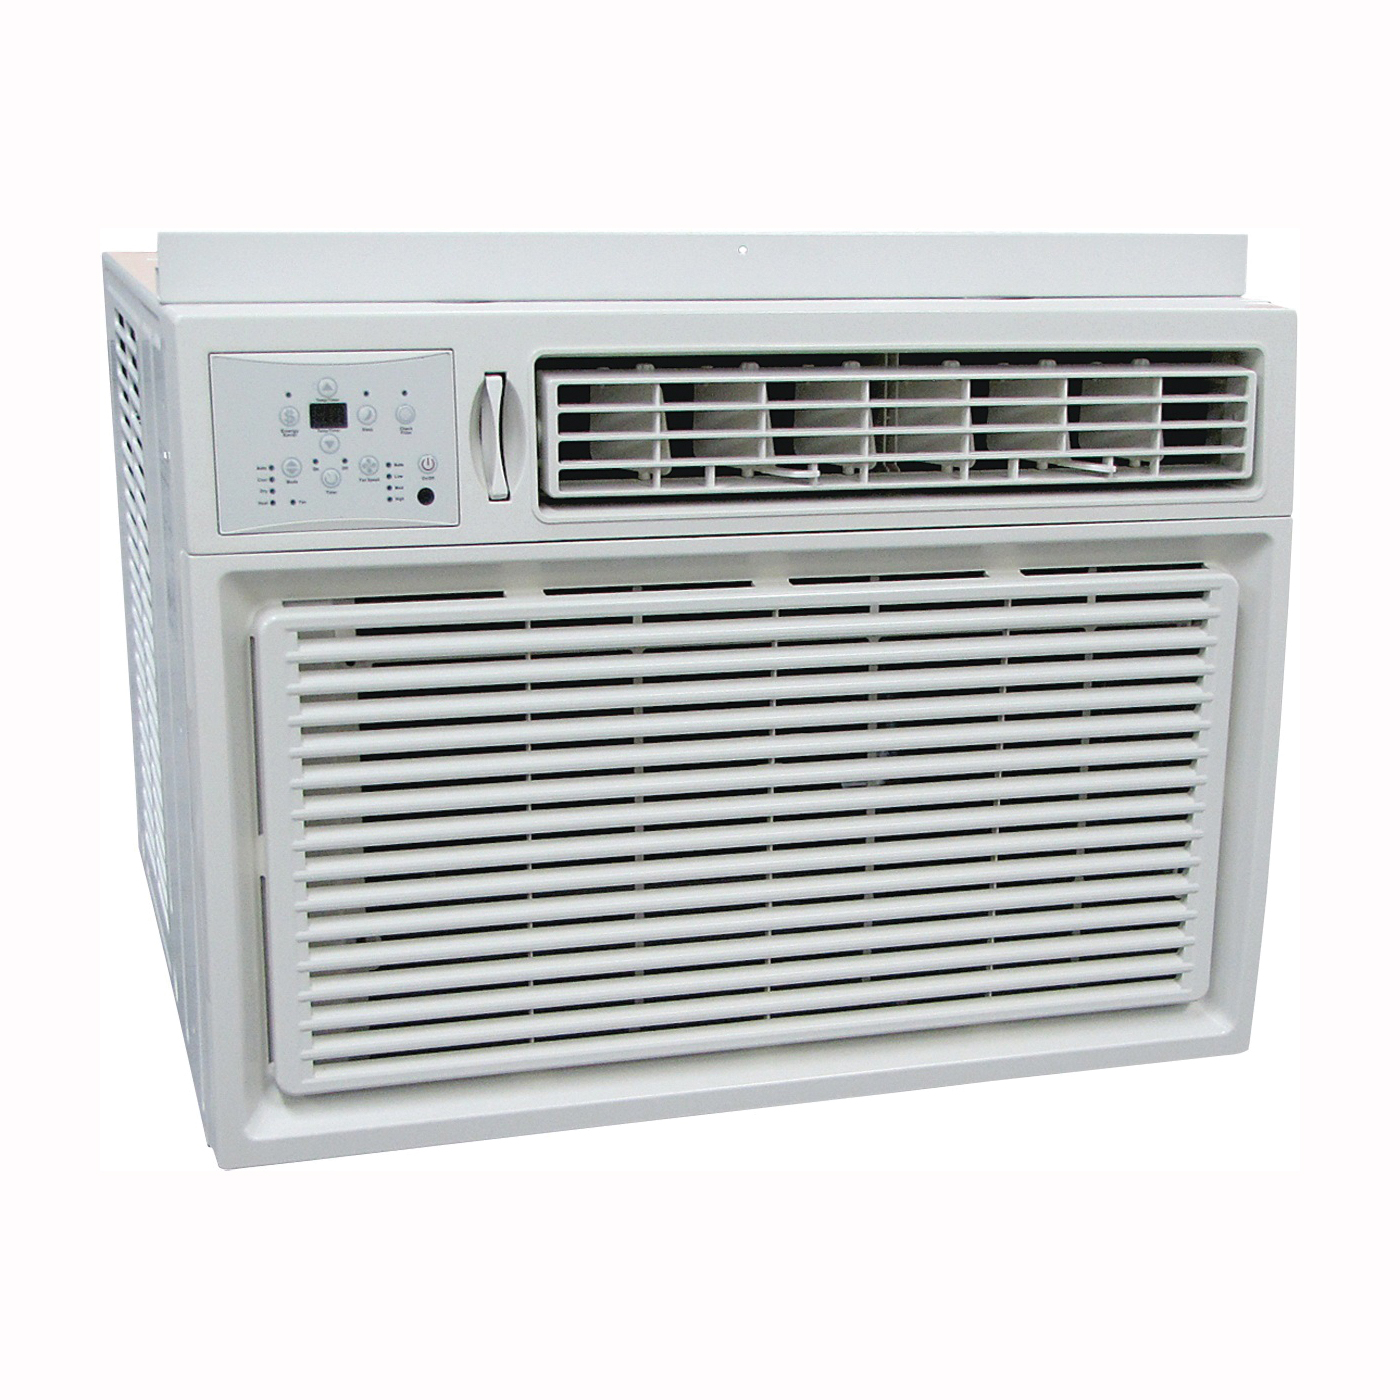 Picture of Comfort-Aire REG-253M Room Air Conditioner, 208/230 V, 60 Hz, 24,700, 25,000 Btu/hr Cooling, 9.4 EER, 63/61/58 dB